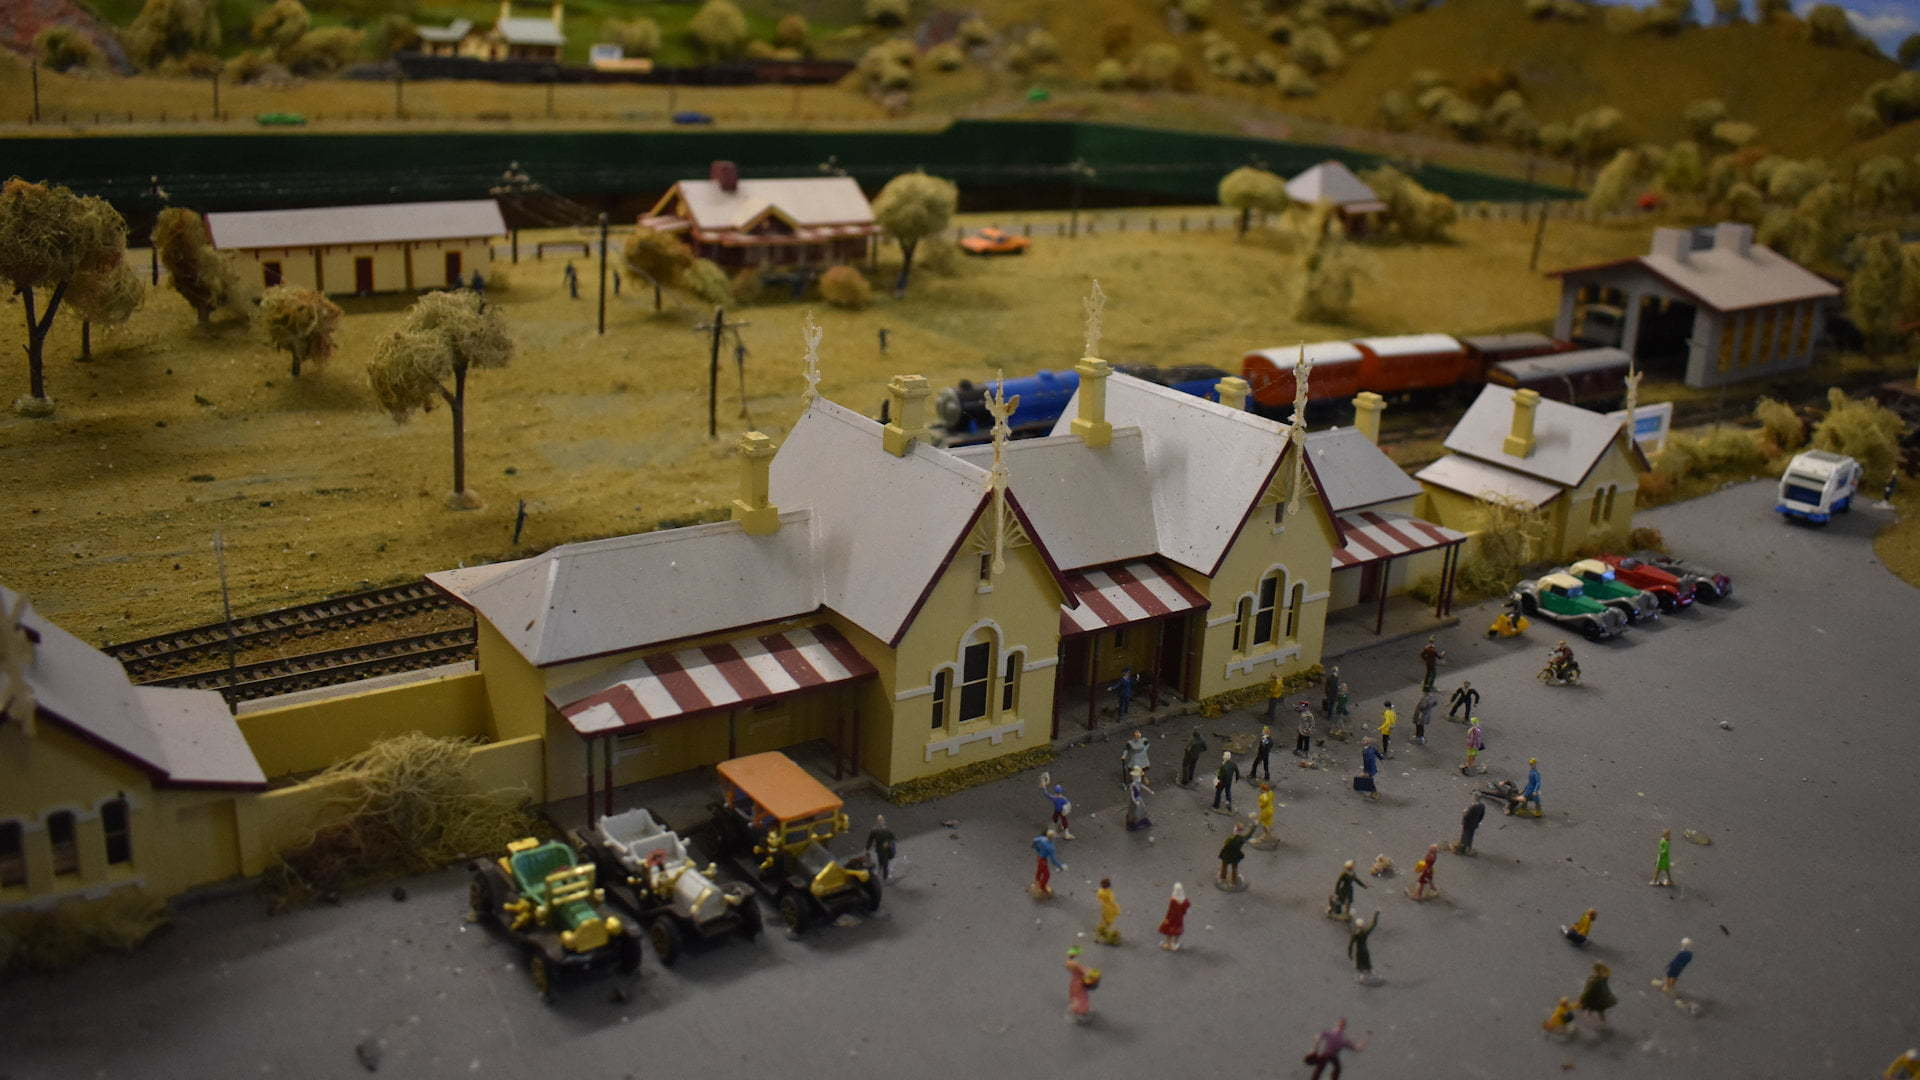 Model of the Tenterfield Railway Station, at the railway museum in Tenterfield